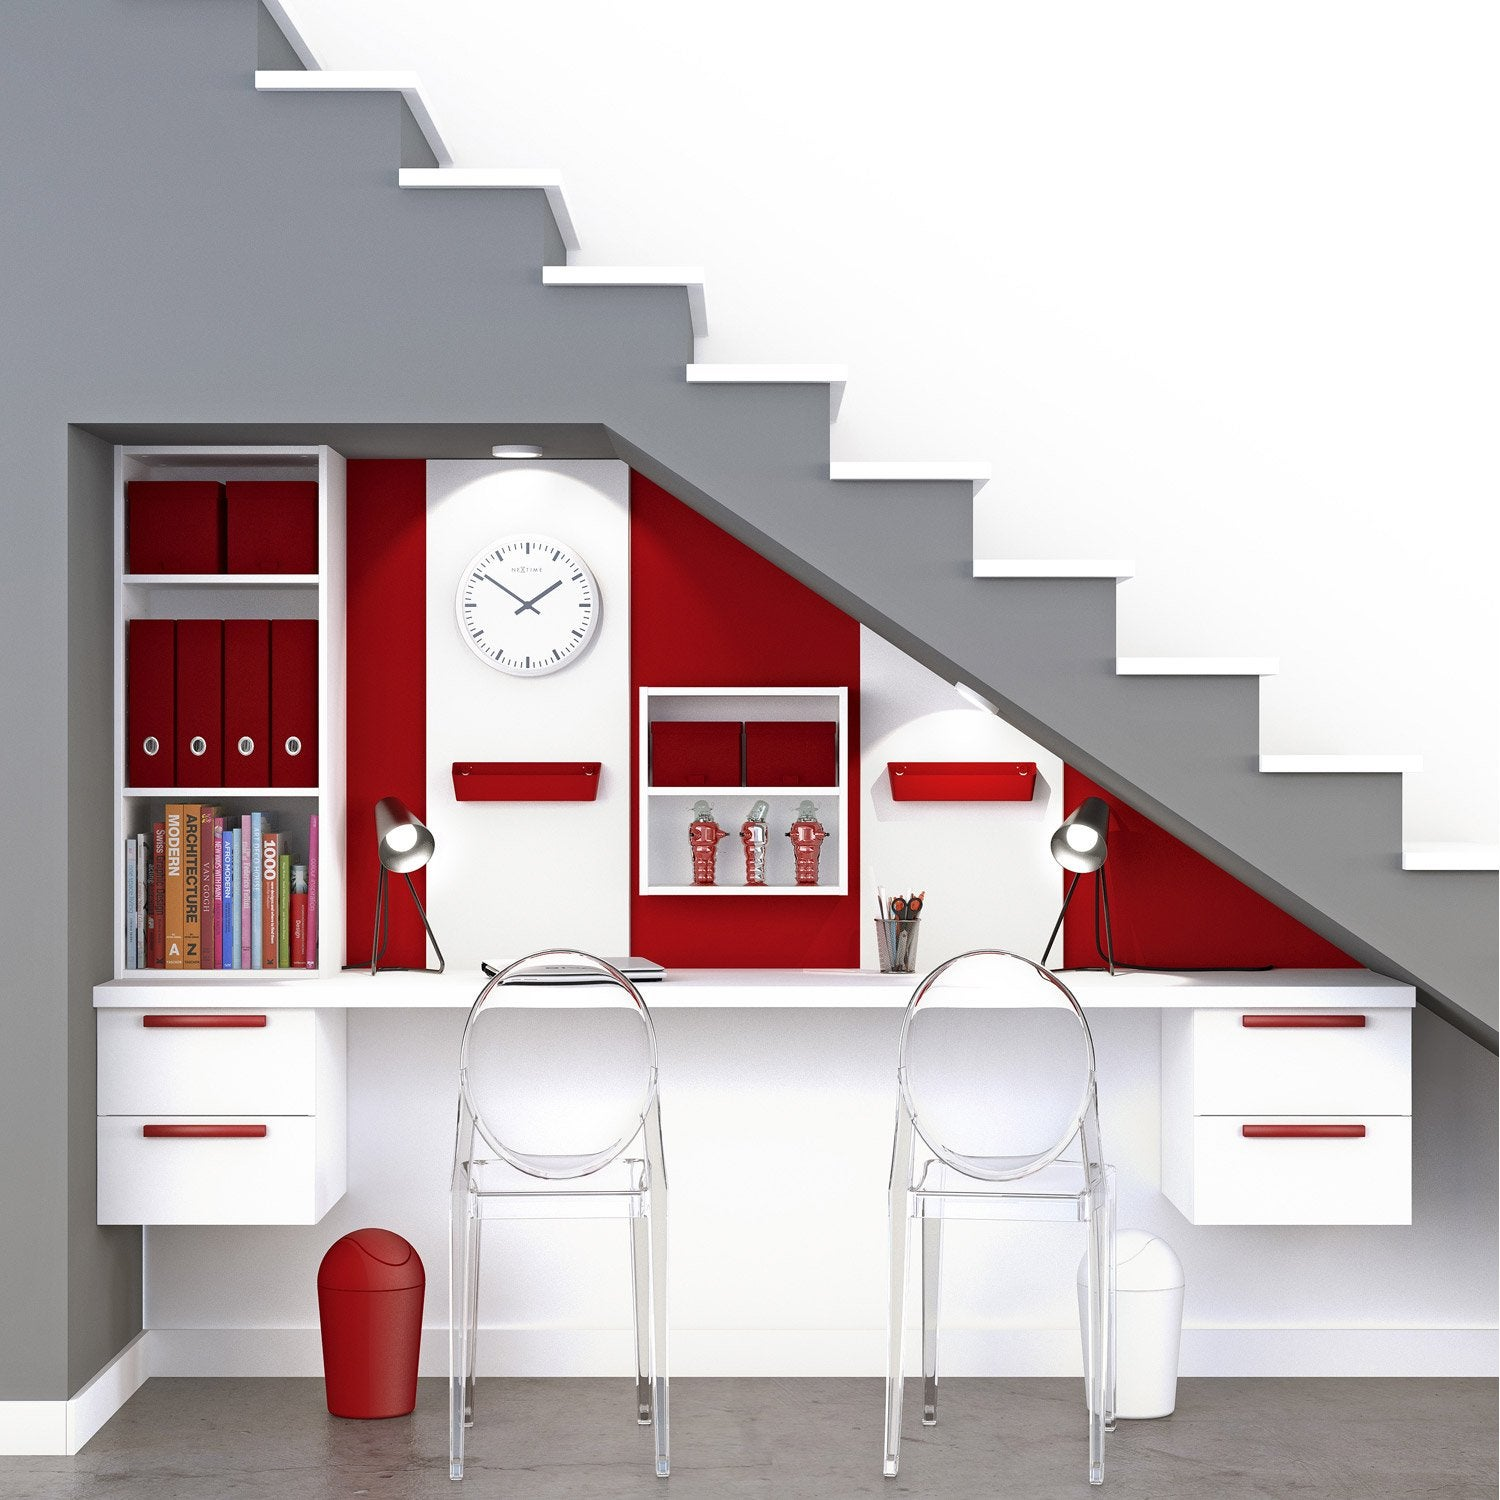 Bureau spaceo home blanc leroy merlin - Meuble escalier leroy merlin ...